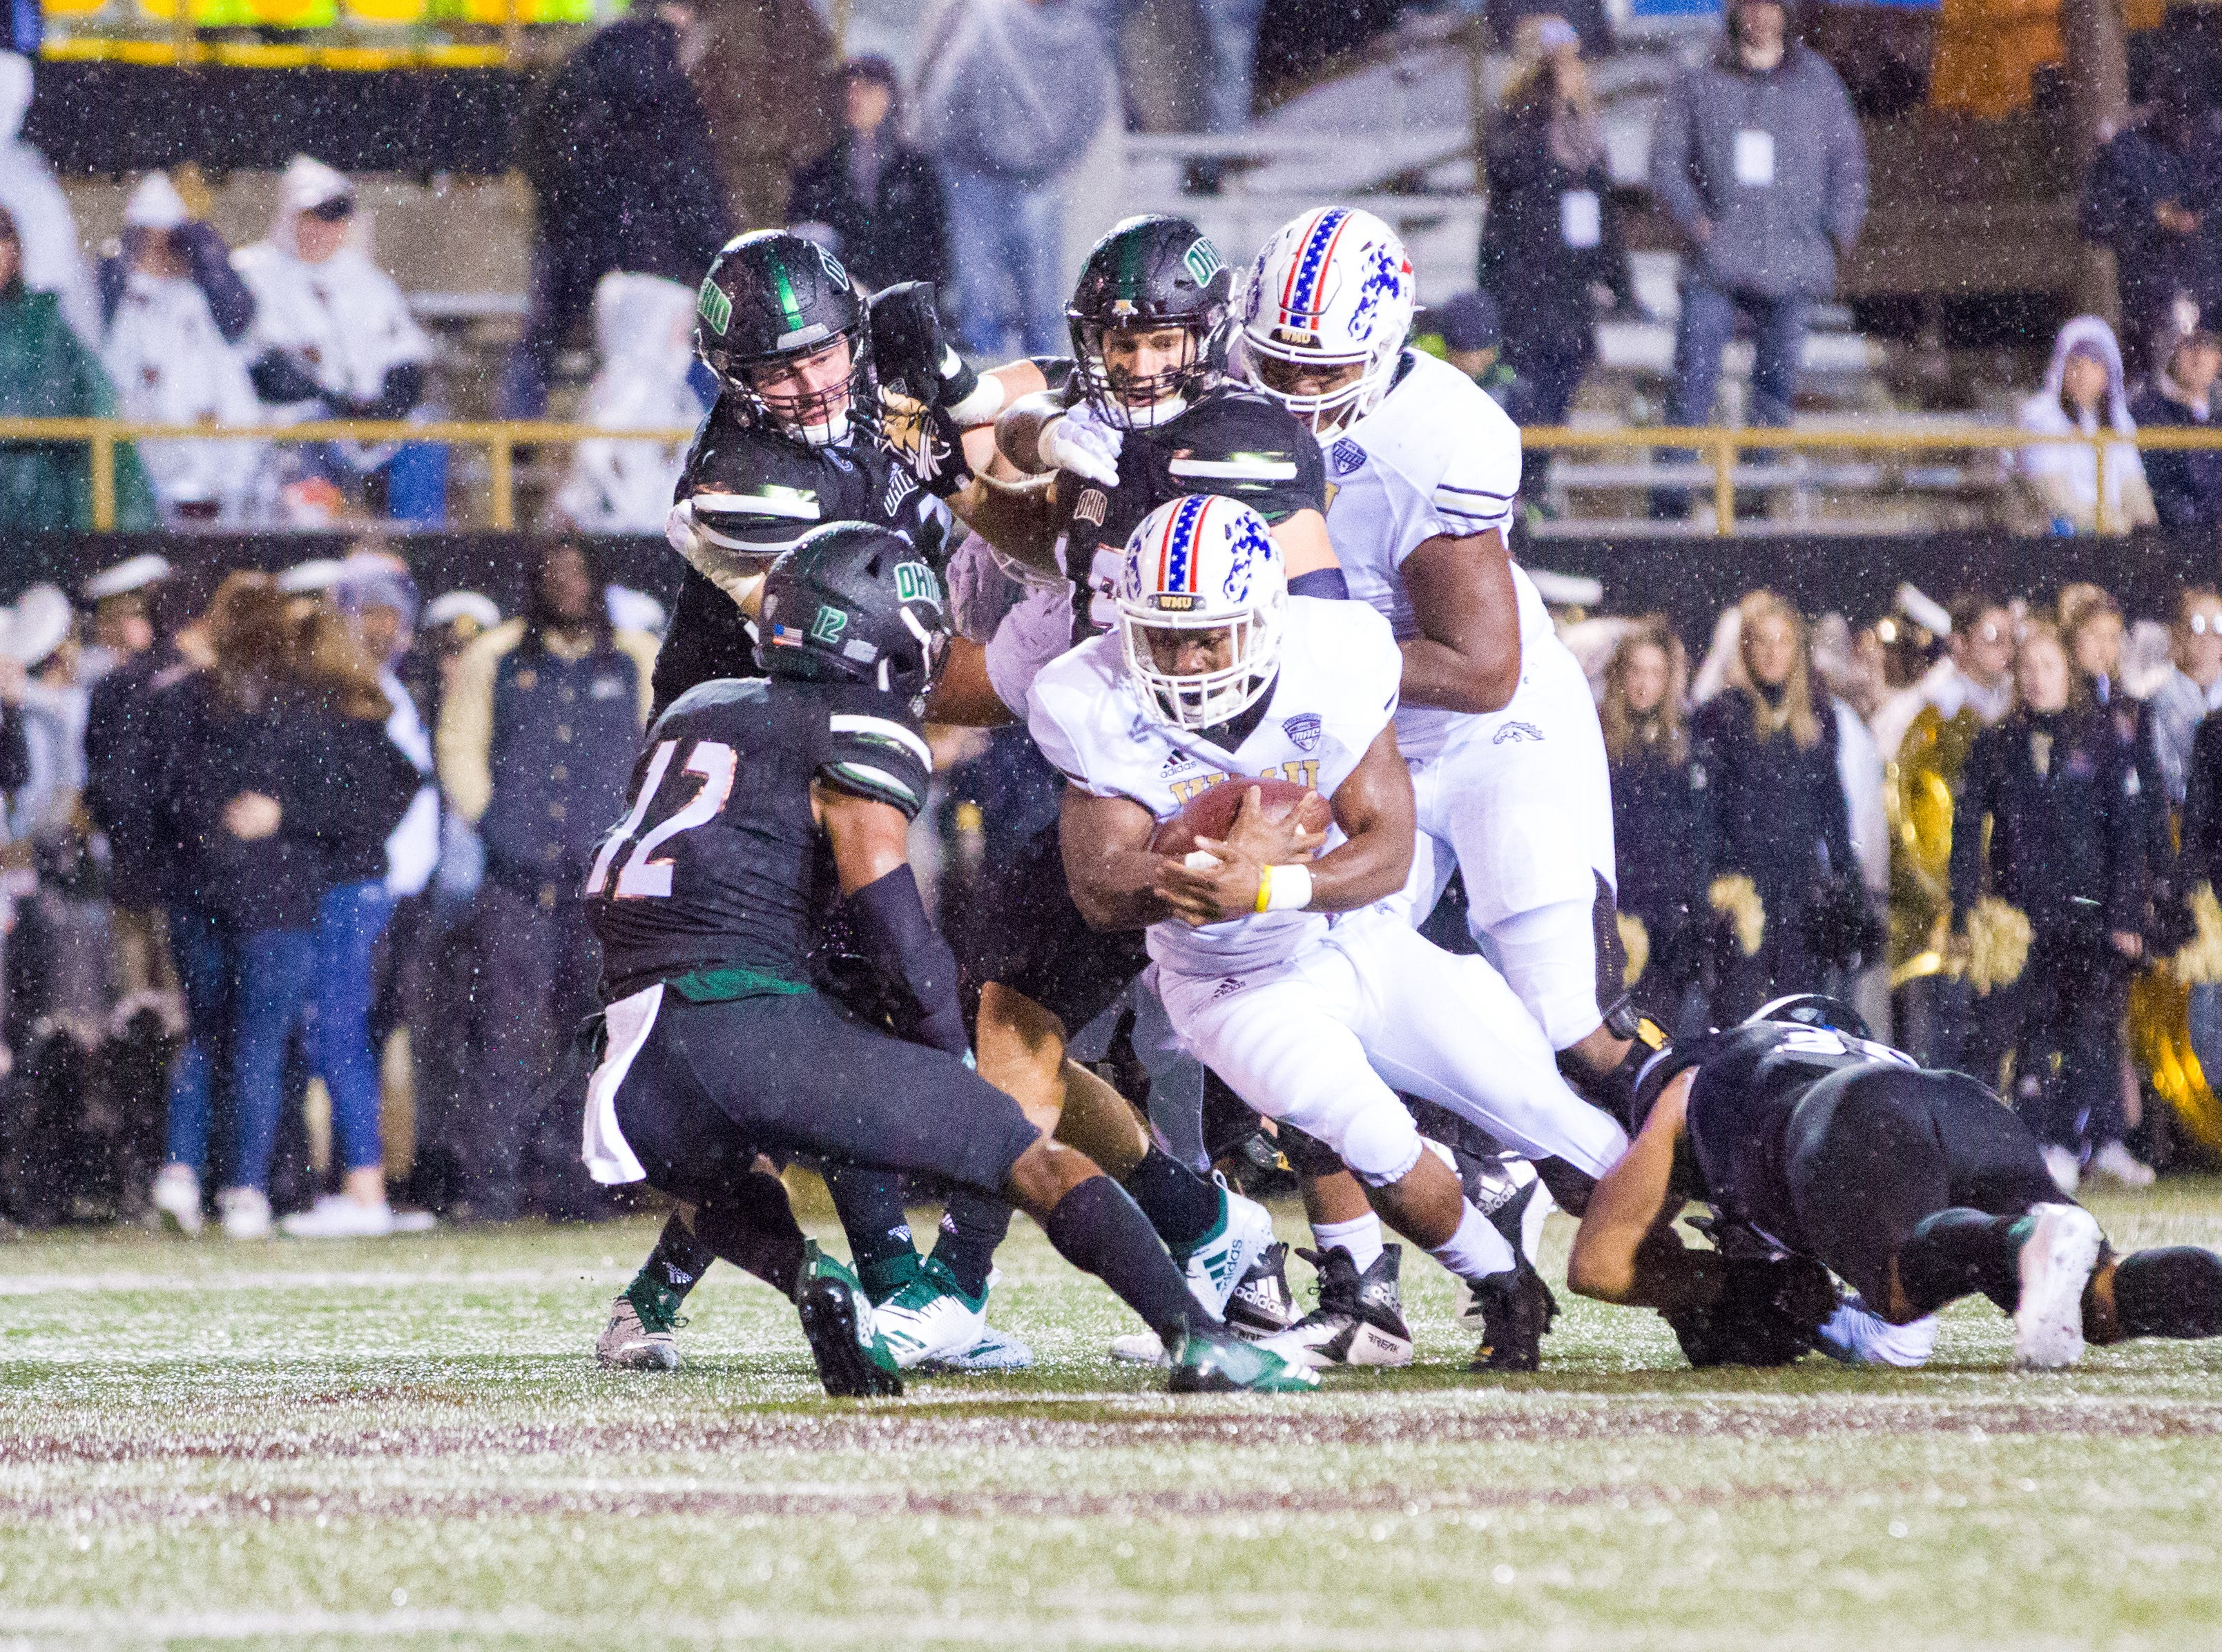 Western Michigan running back Jamauri Bogan carries against Ohio at Waldo Stadium in Kalamazoo on Thursday, November 1, 2018.